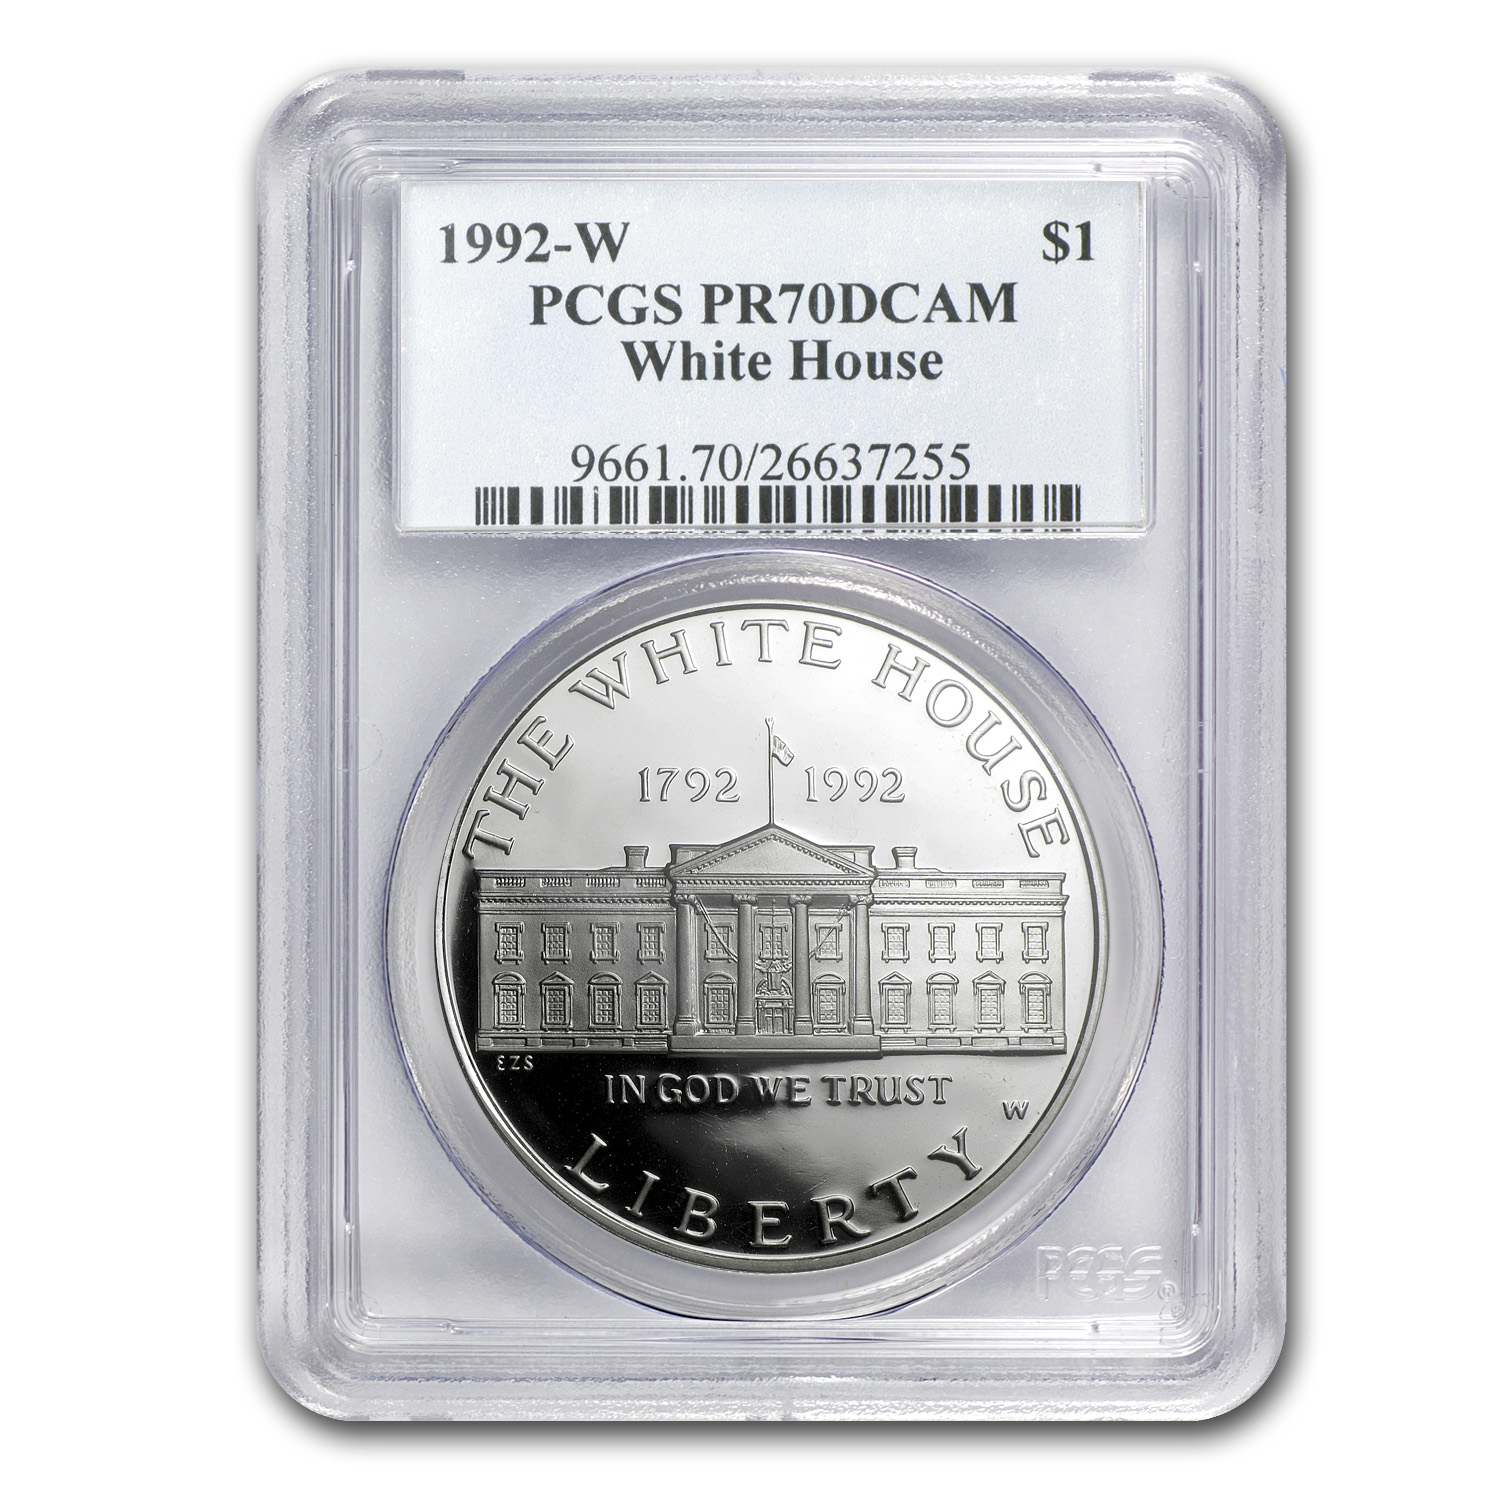 1992-W White House $1 Silver Commem PR-70 PCGS